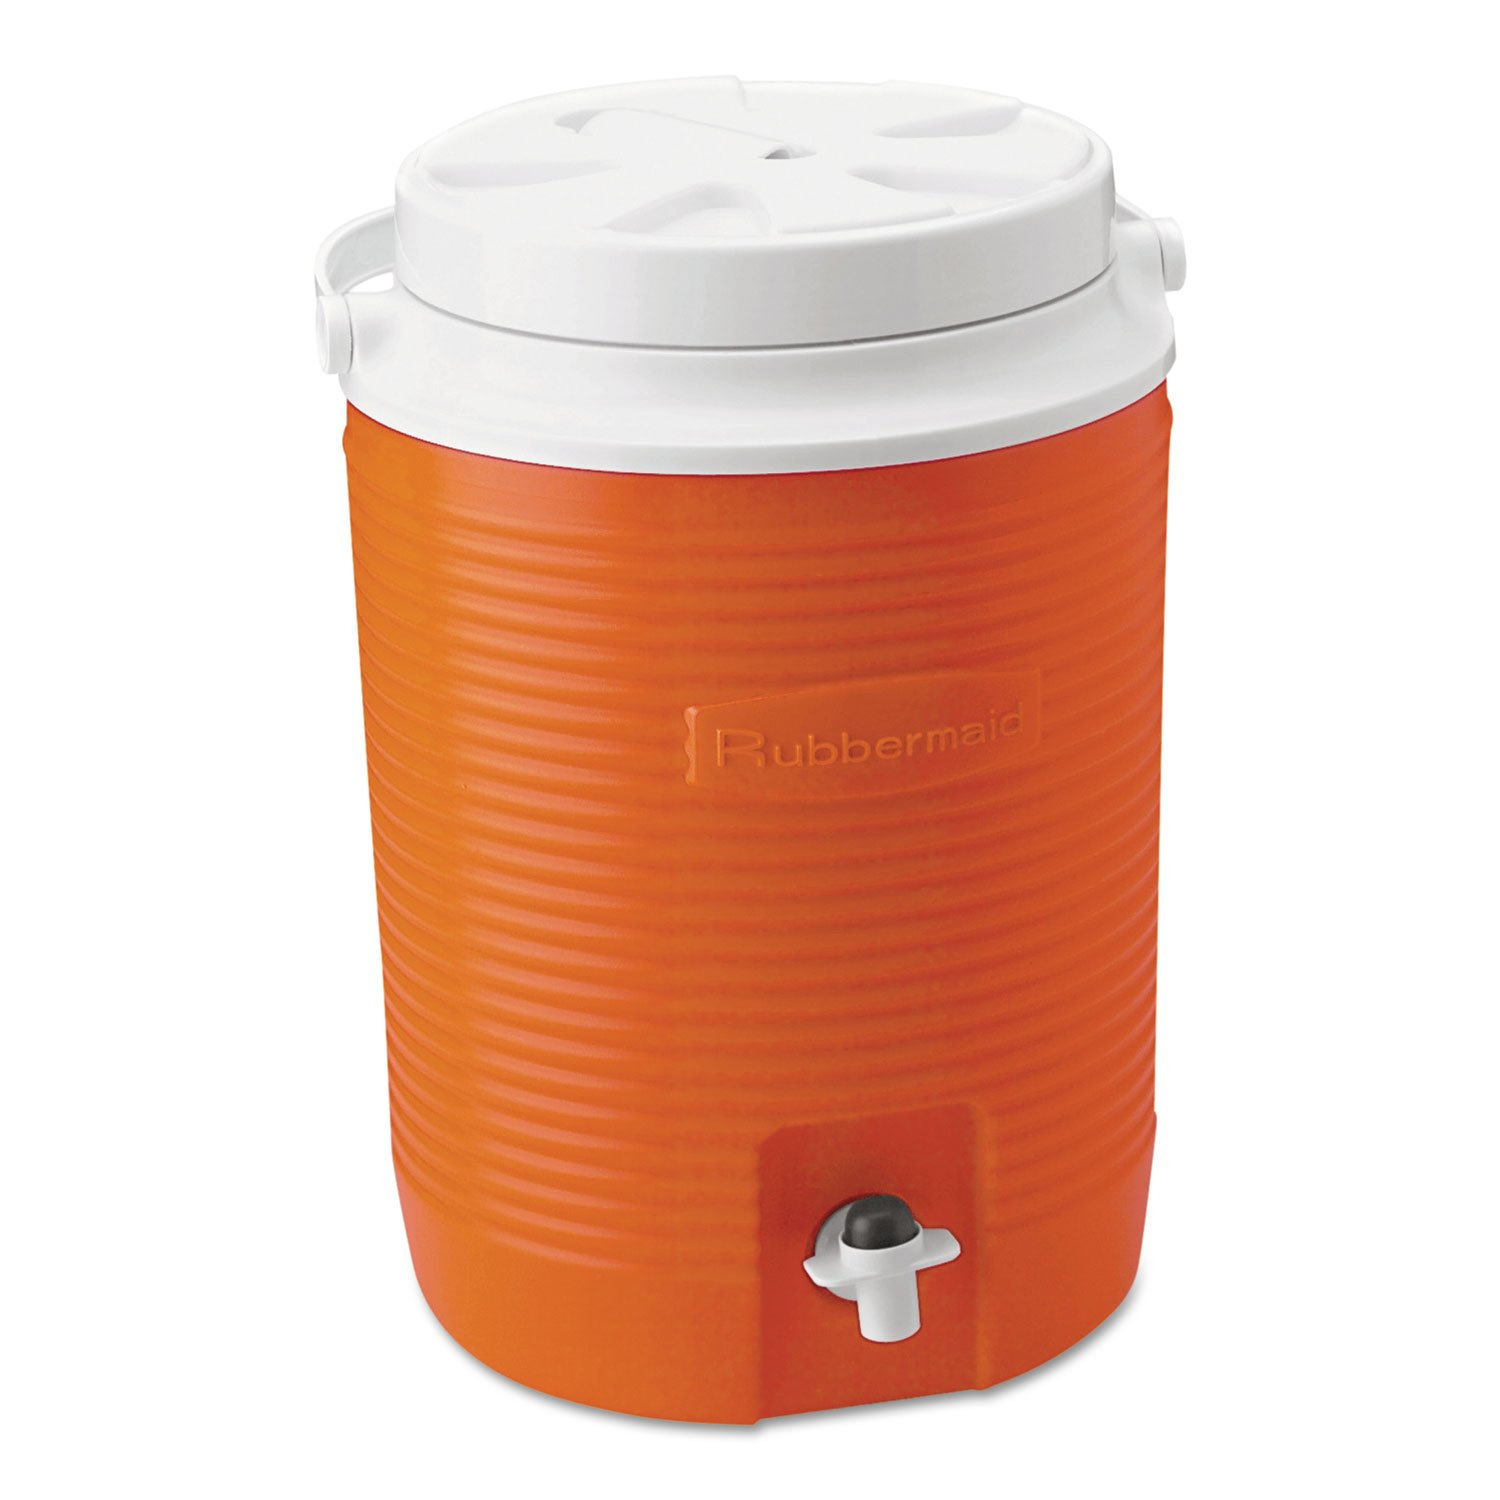 Durable Rubbermaid FG15300411 2 Gallon Orange Victory Thermal Jug Water Coolers by The Rubbermaid   B01ER3LXFQ